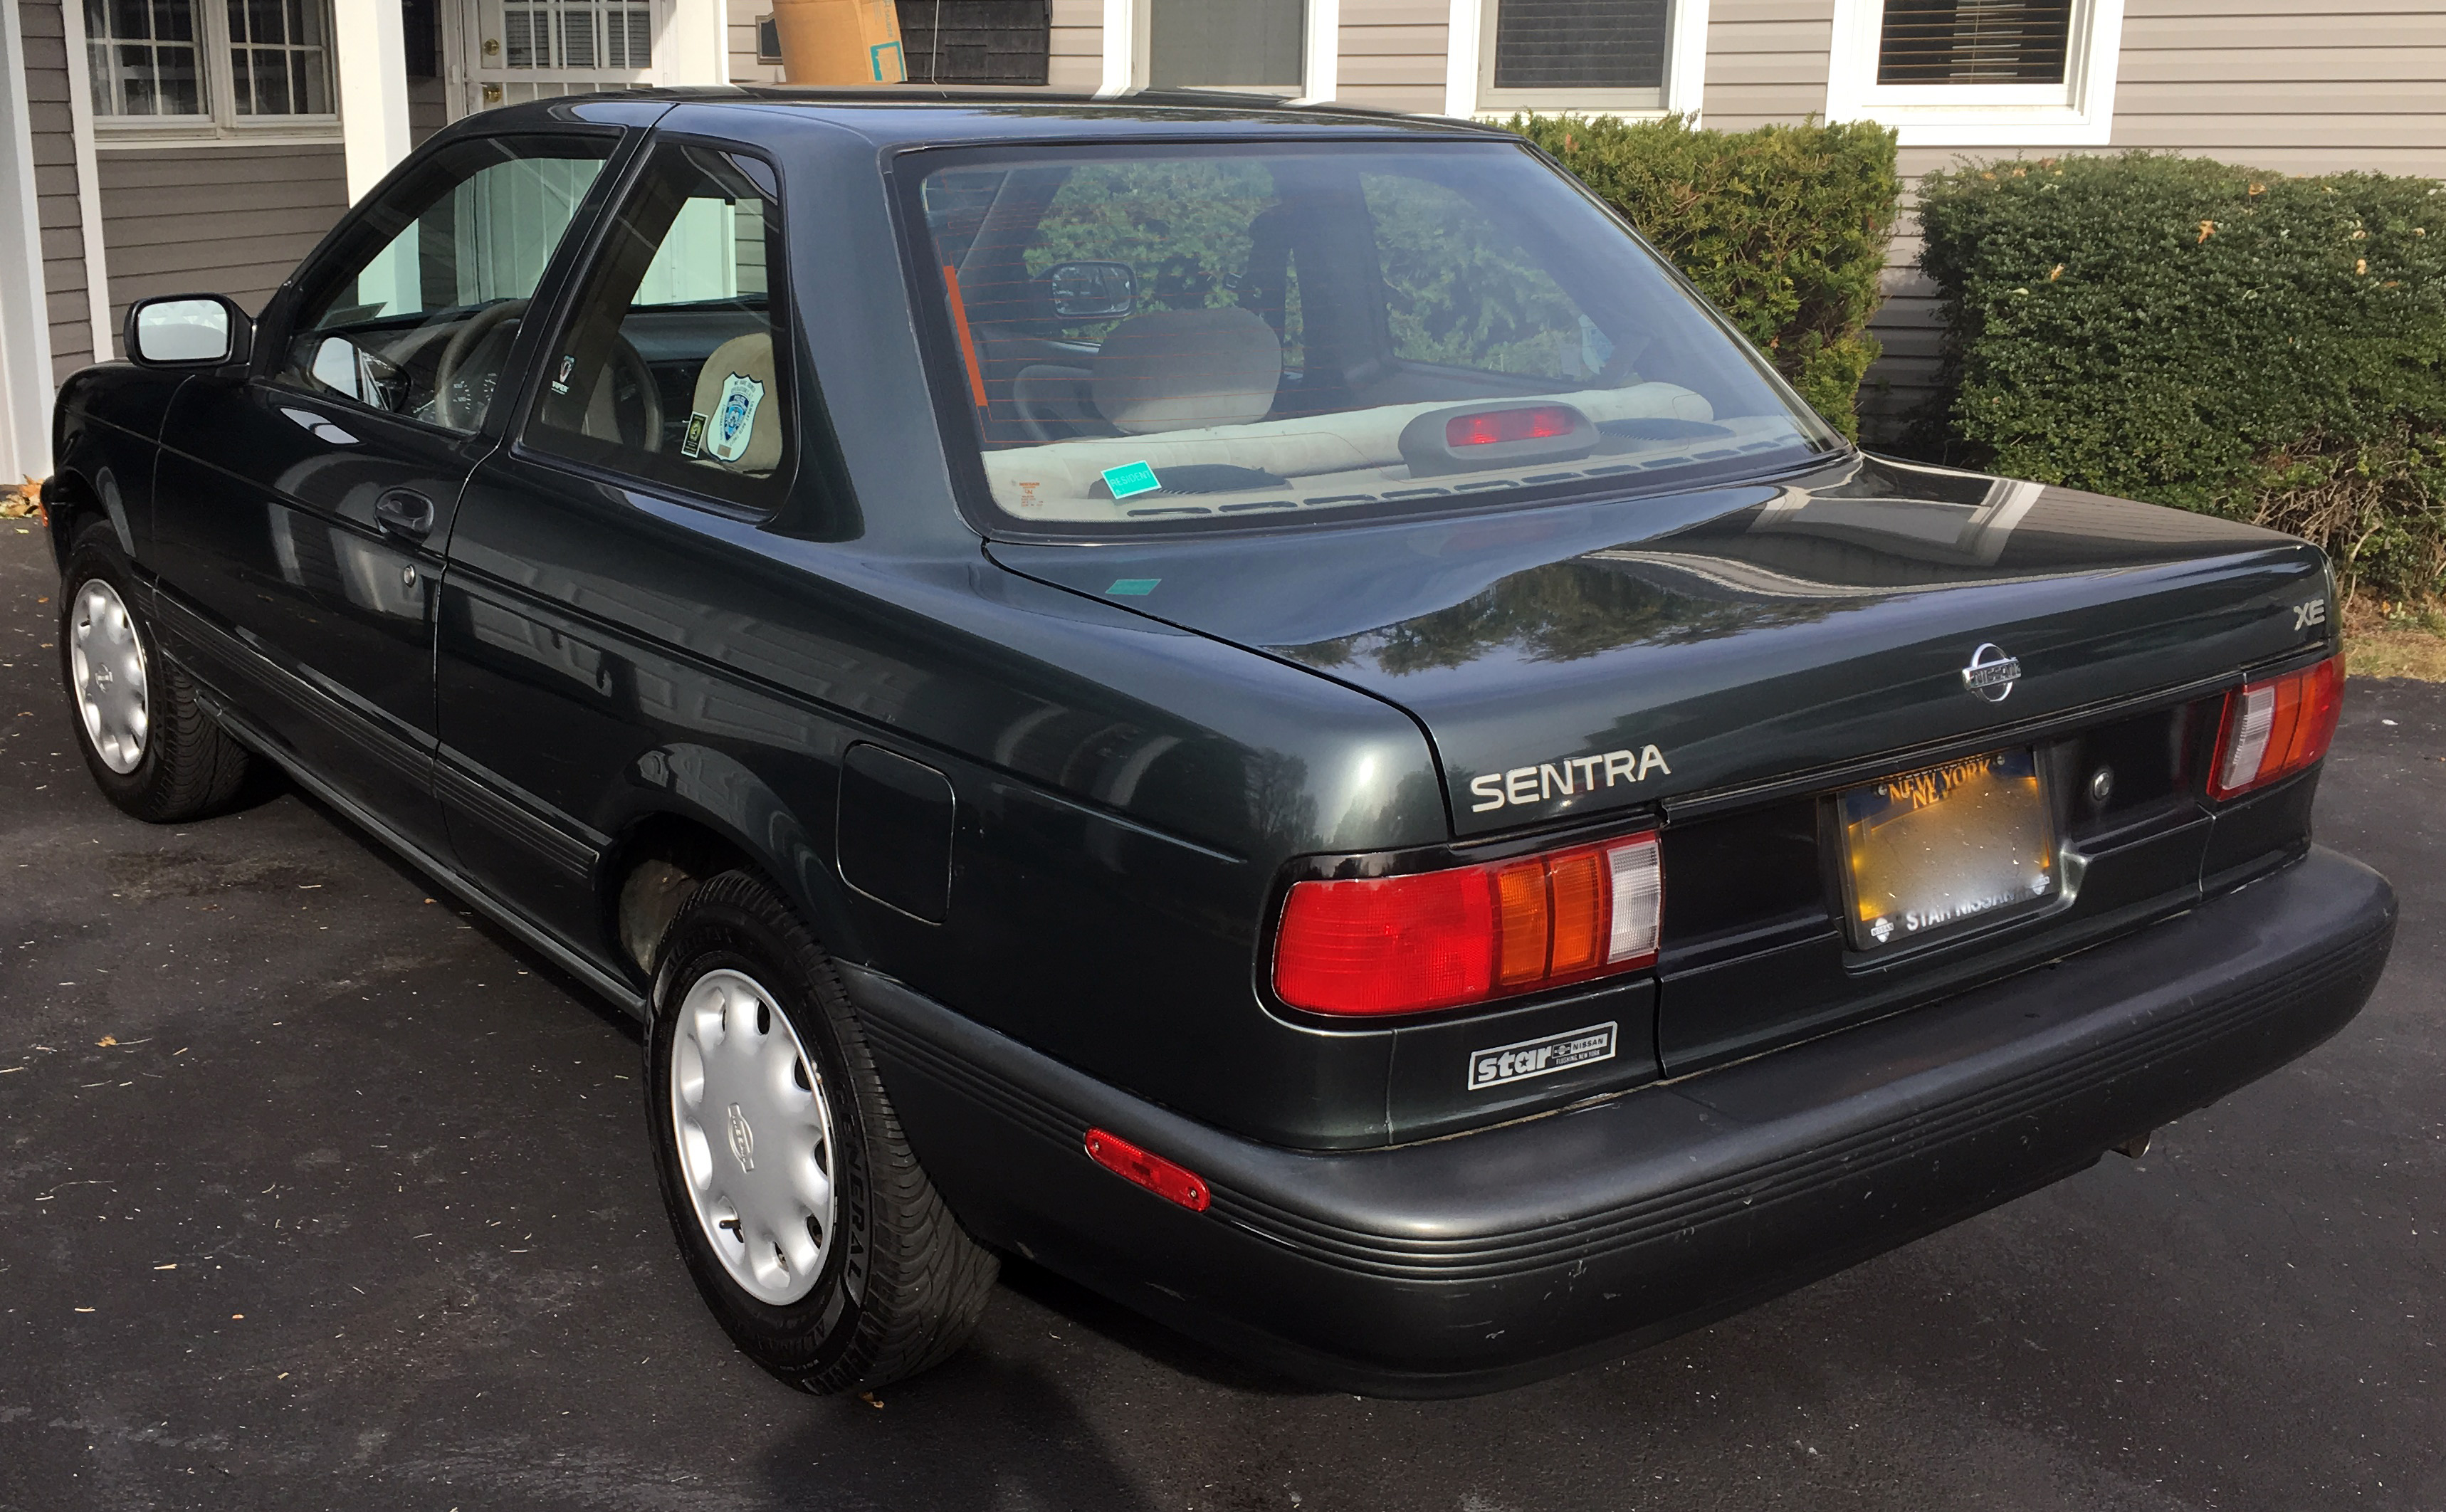 Lot 3 - 1993 NISSAN SENTRA XE, 2-DOOR SEDAN